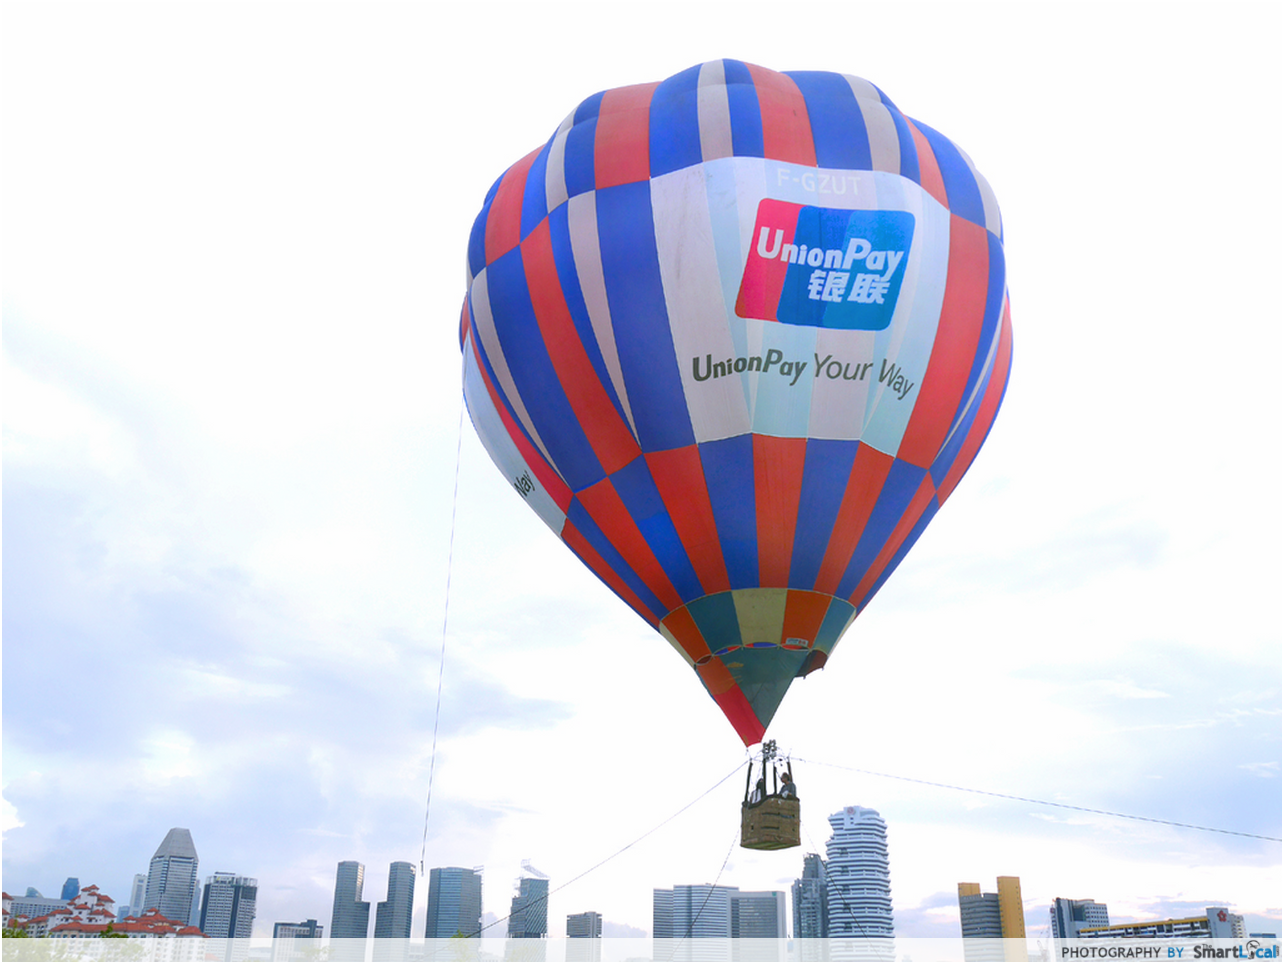 I hopped on the free hot air balloon ride at the sea games for Air balloon games